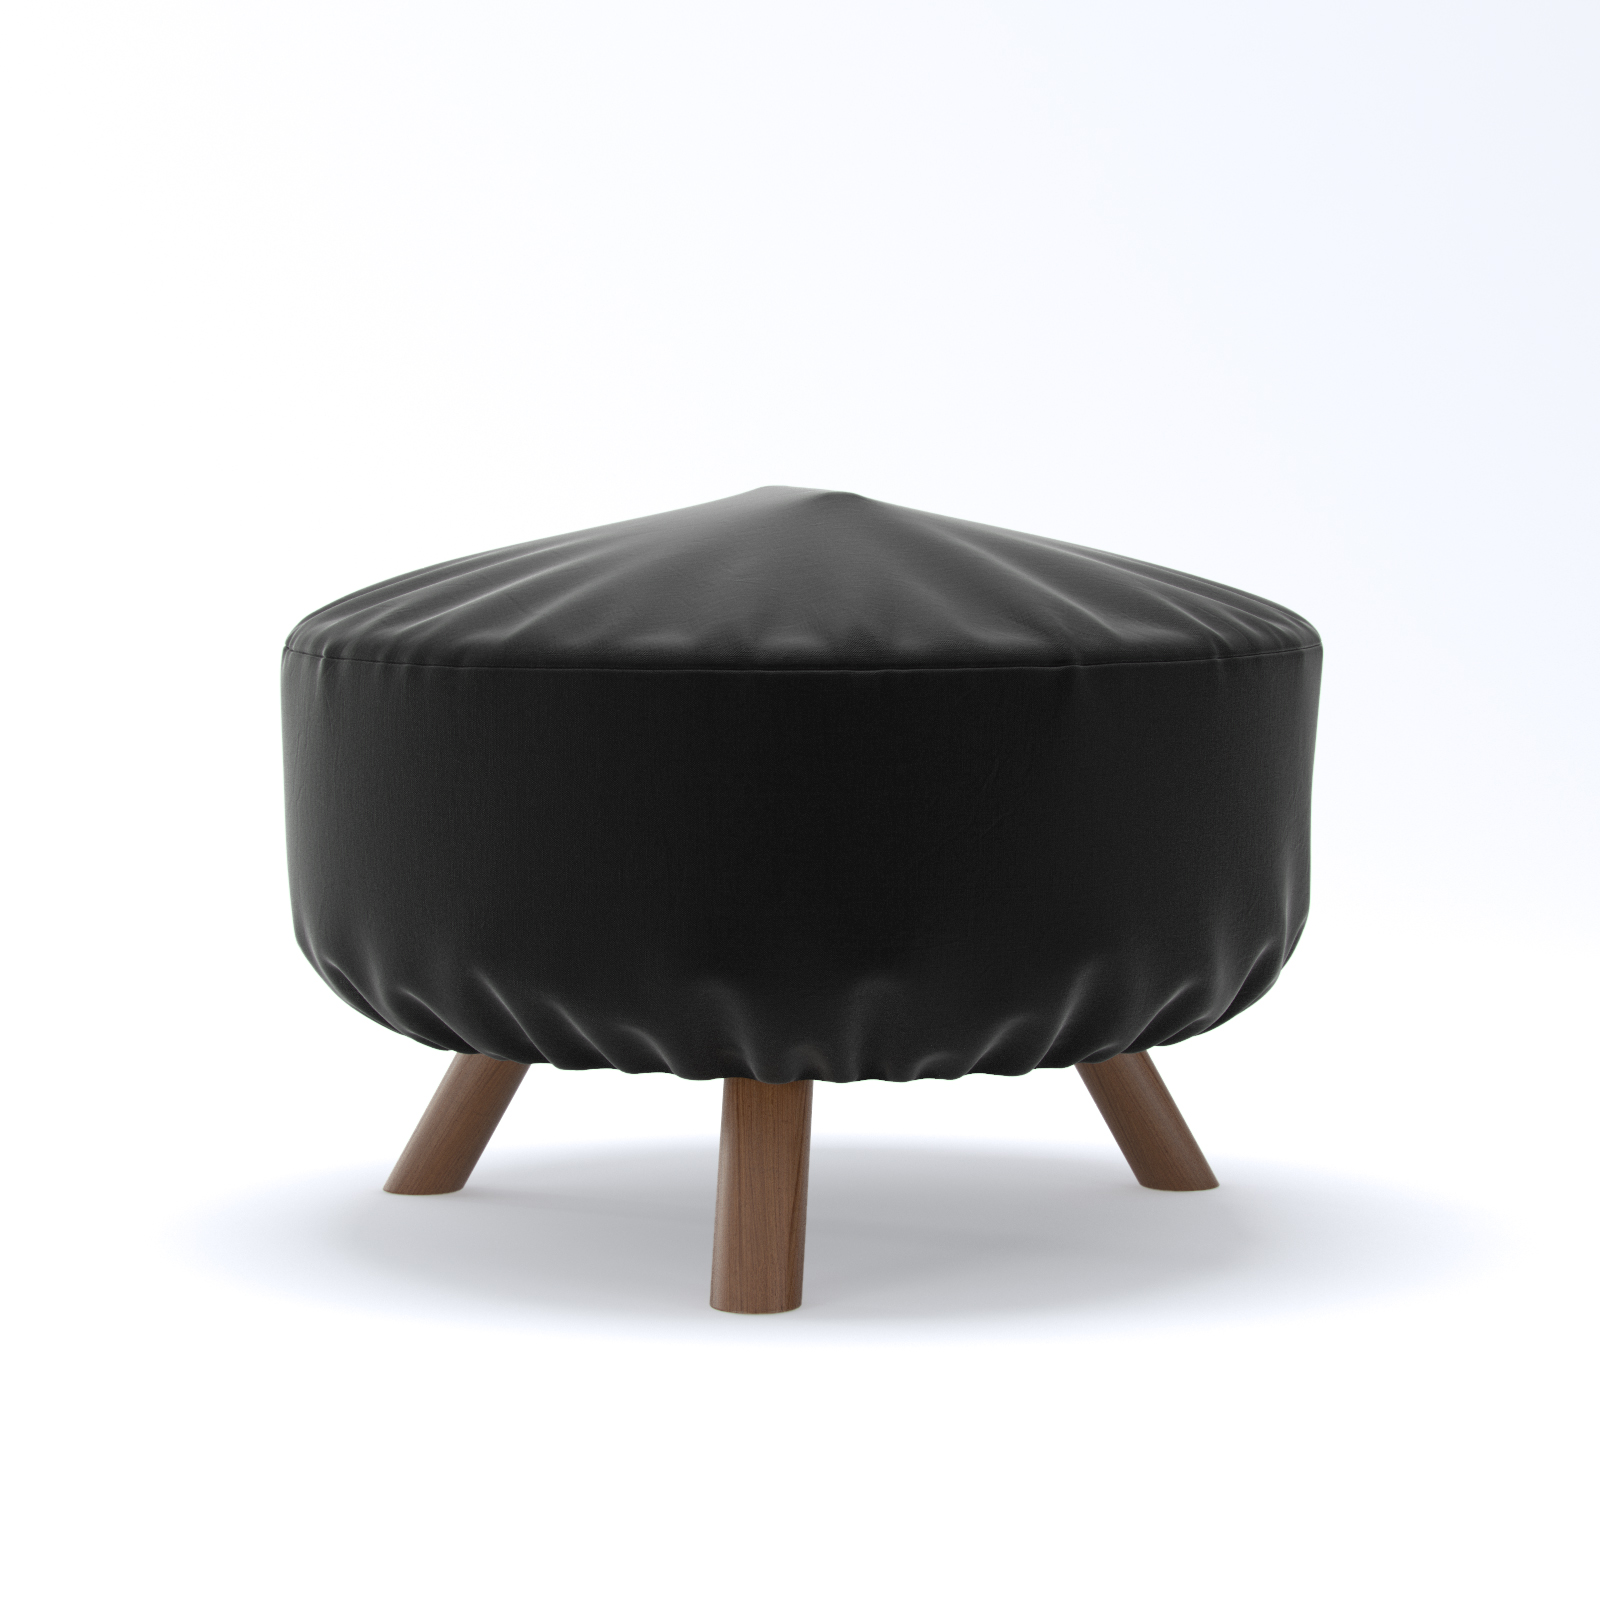 dura covers 32 inch black heavy duty round fire pit cover durable and water resistant firepit cover